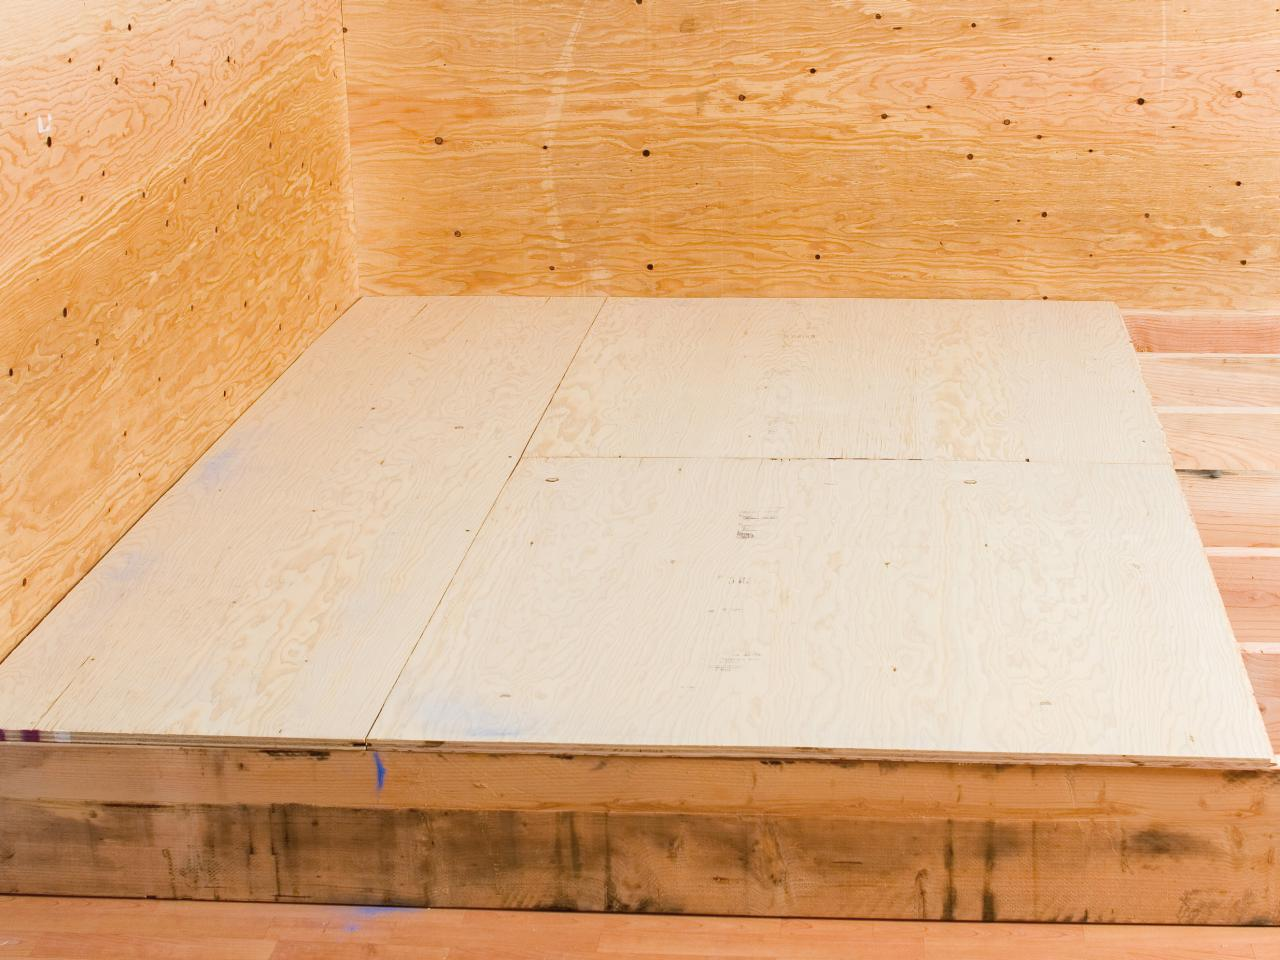 How to lay plywood on the floor